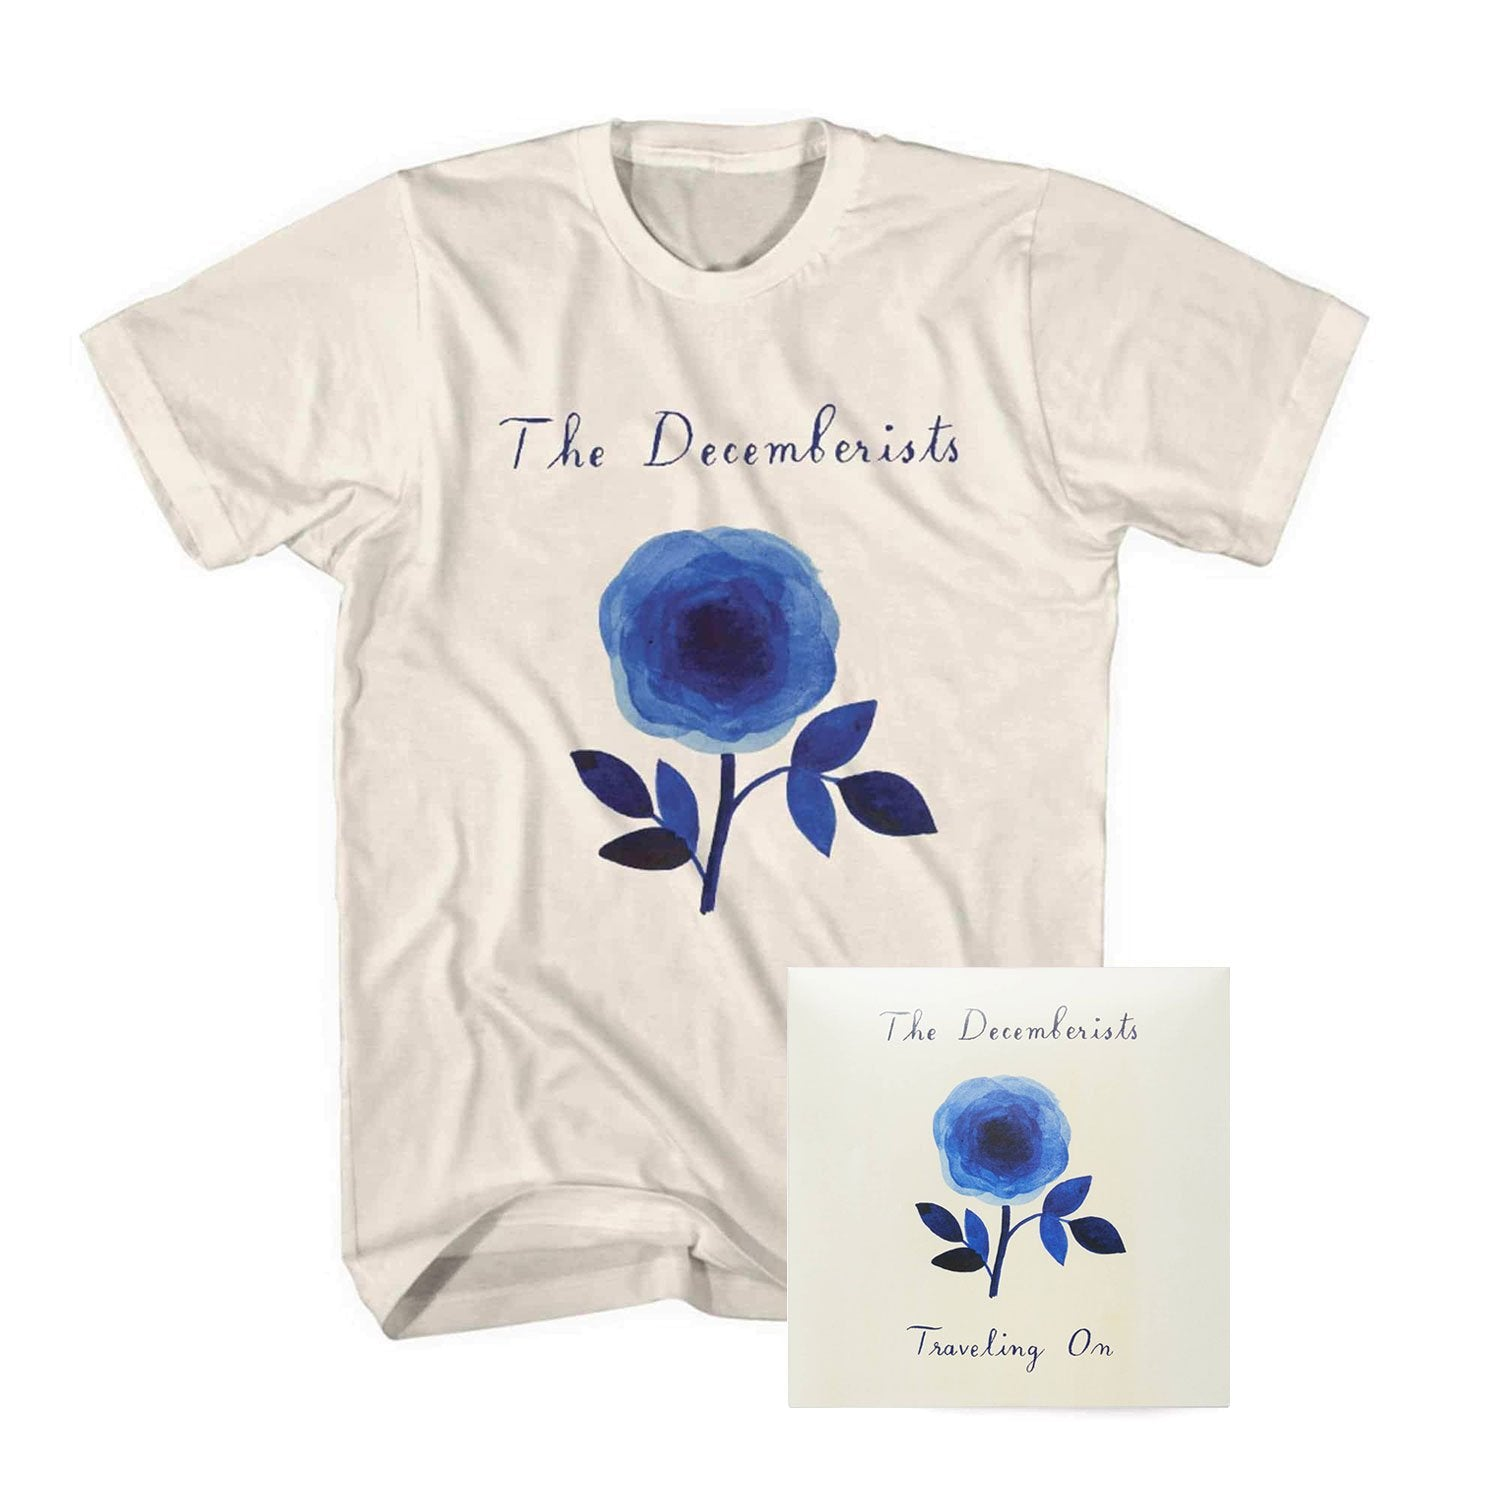 'Traveling On' EP + T-Shirt Bundle